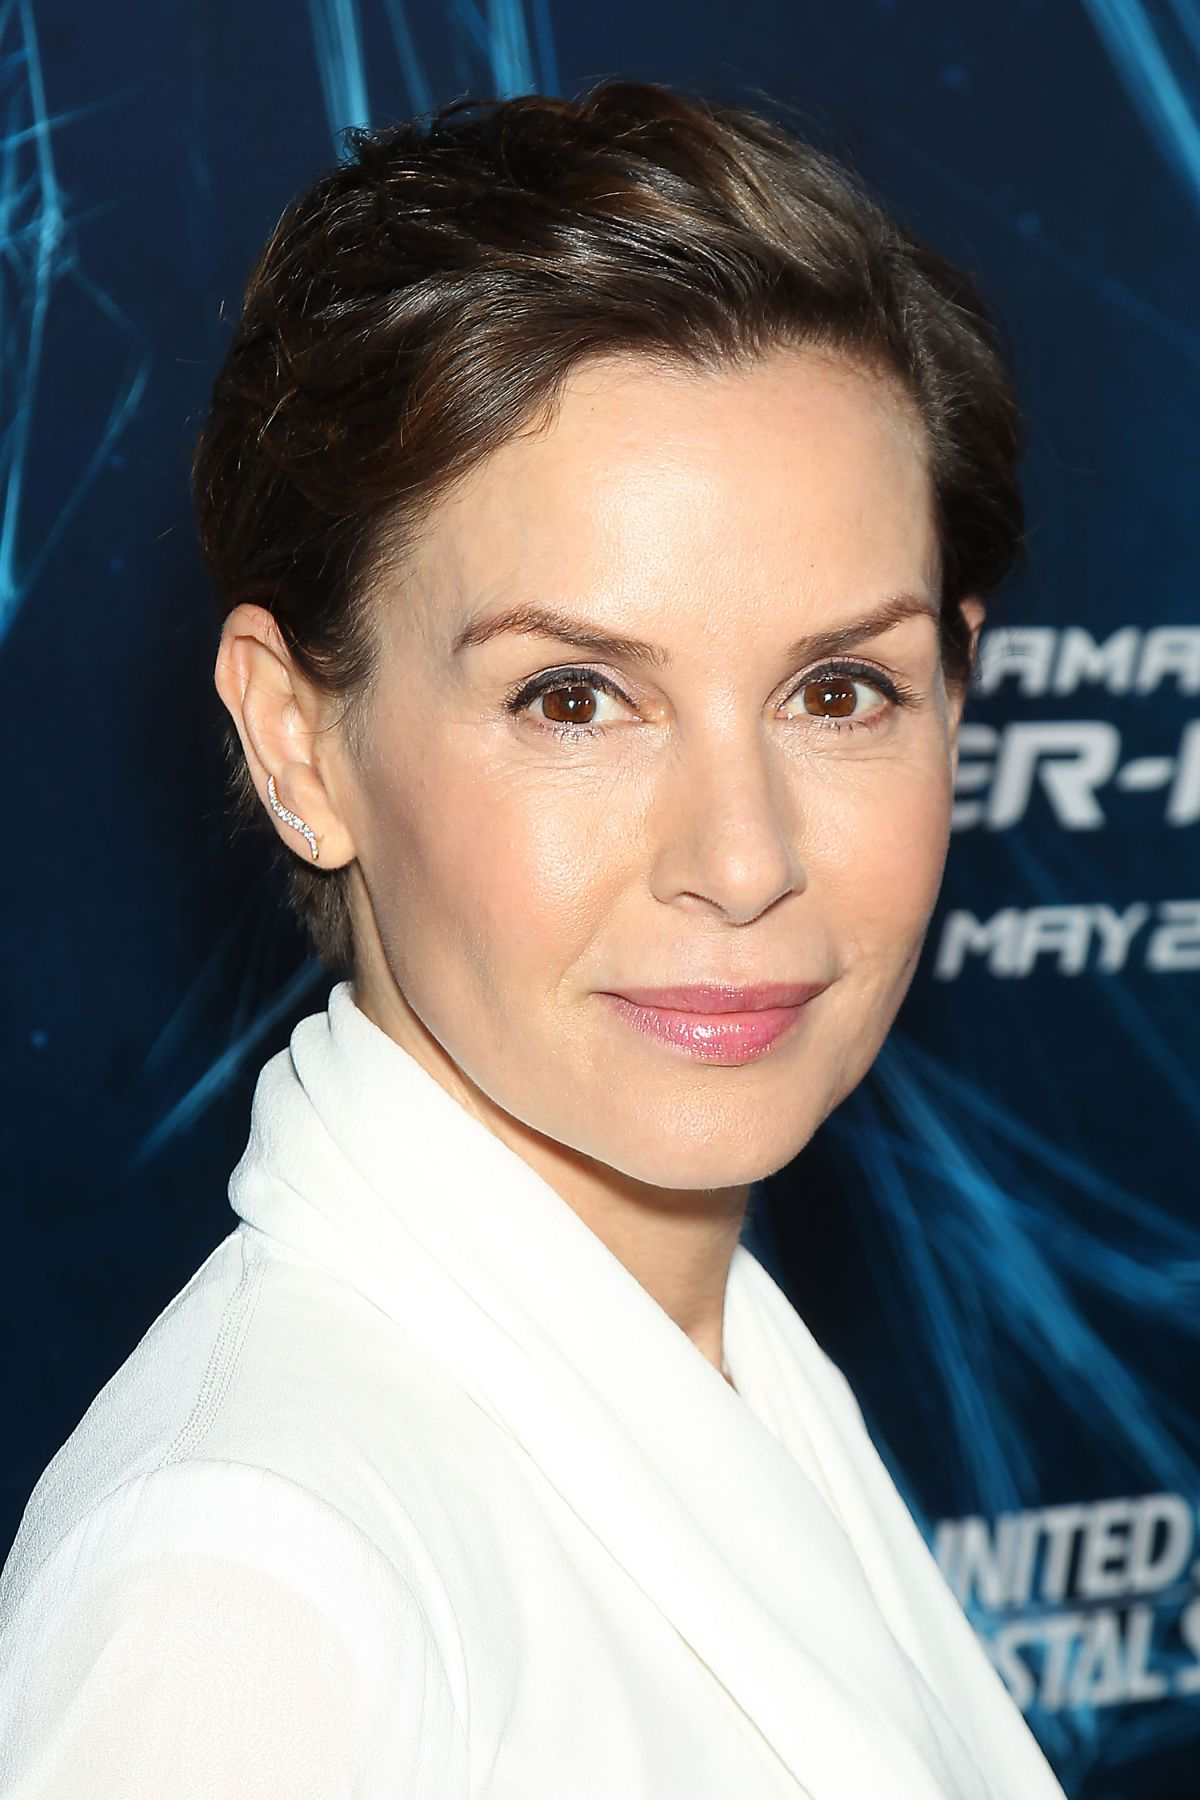 embeth davidtz height